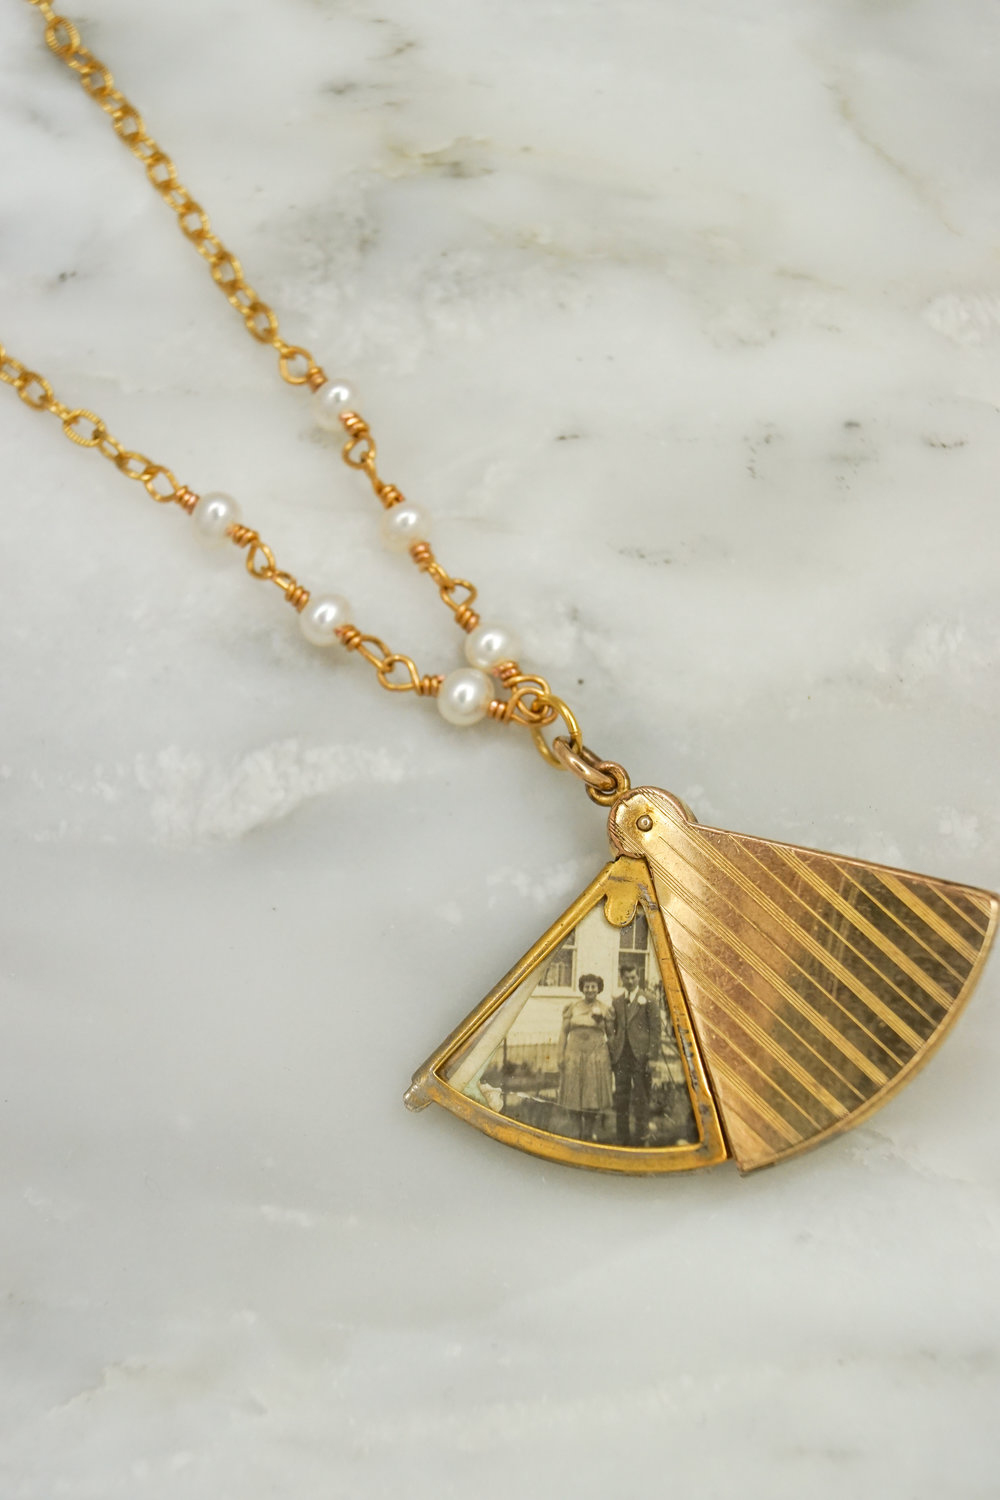 Gold antique locket on pearl necklace.